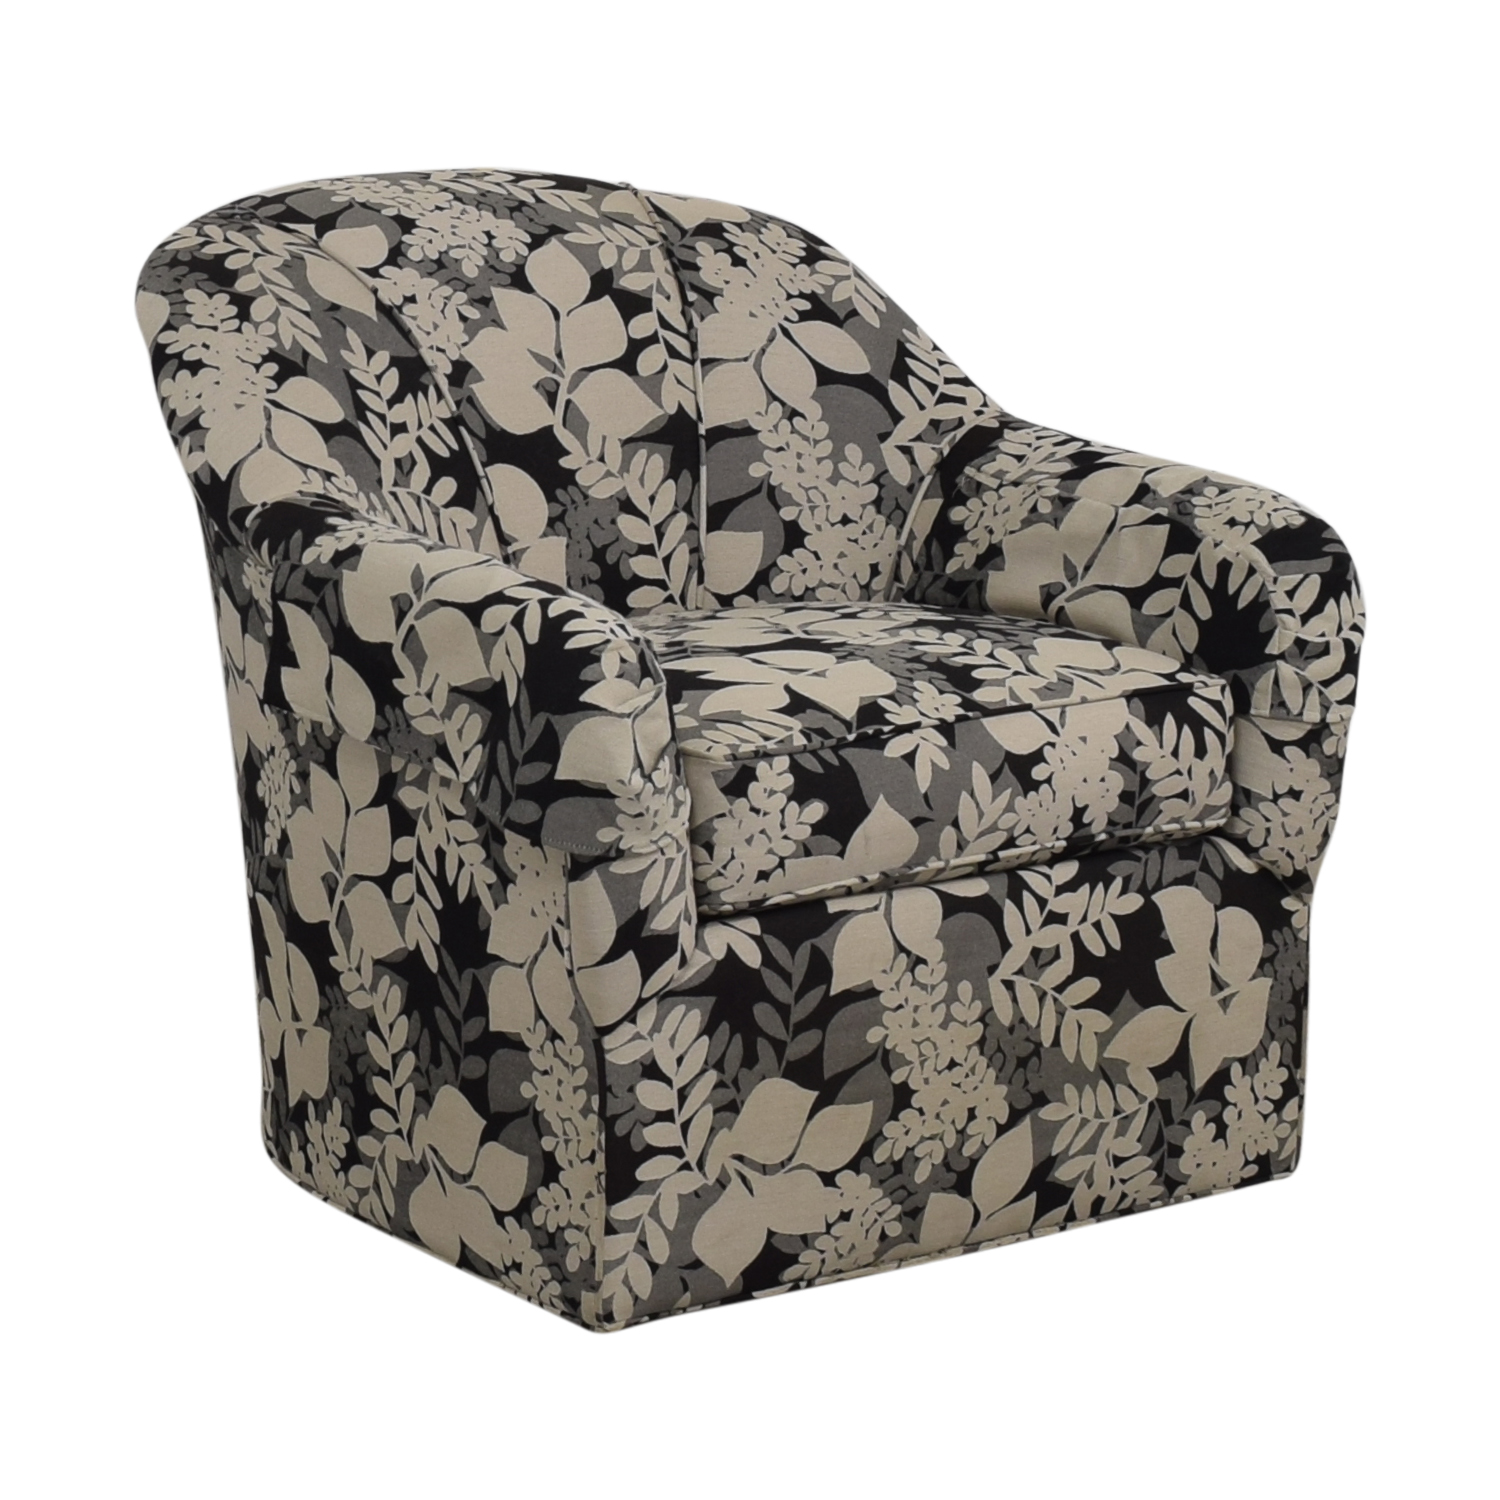 Ethan Allen Ethan Allen Black White and Grey Leaf Pattern Swivel Arm Chair discount